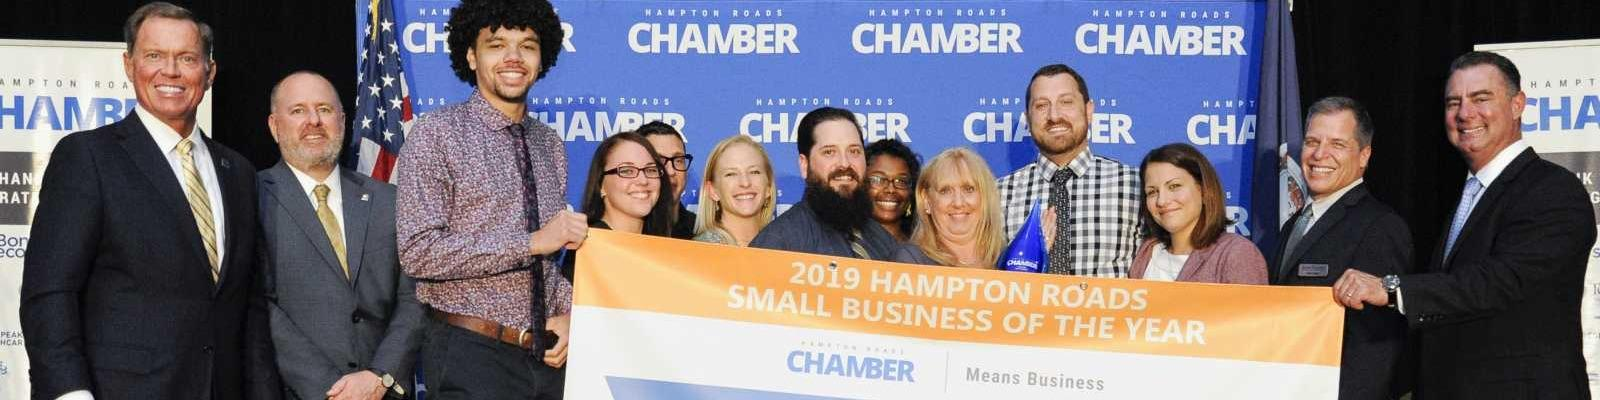 2019 Hampton Roads Small Business of the Year - The Dirty Buffalo Cover